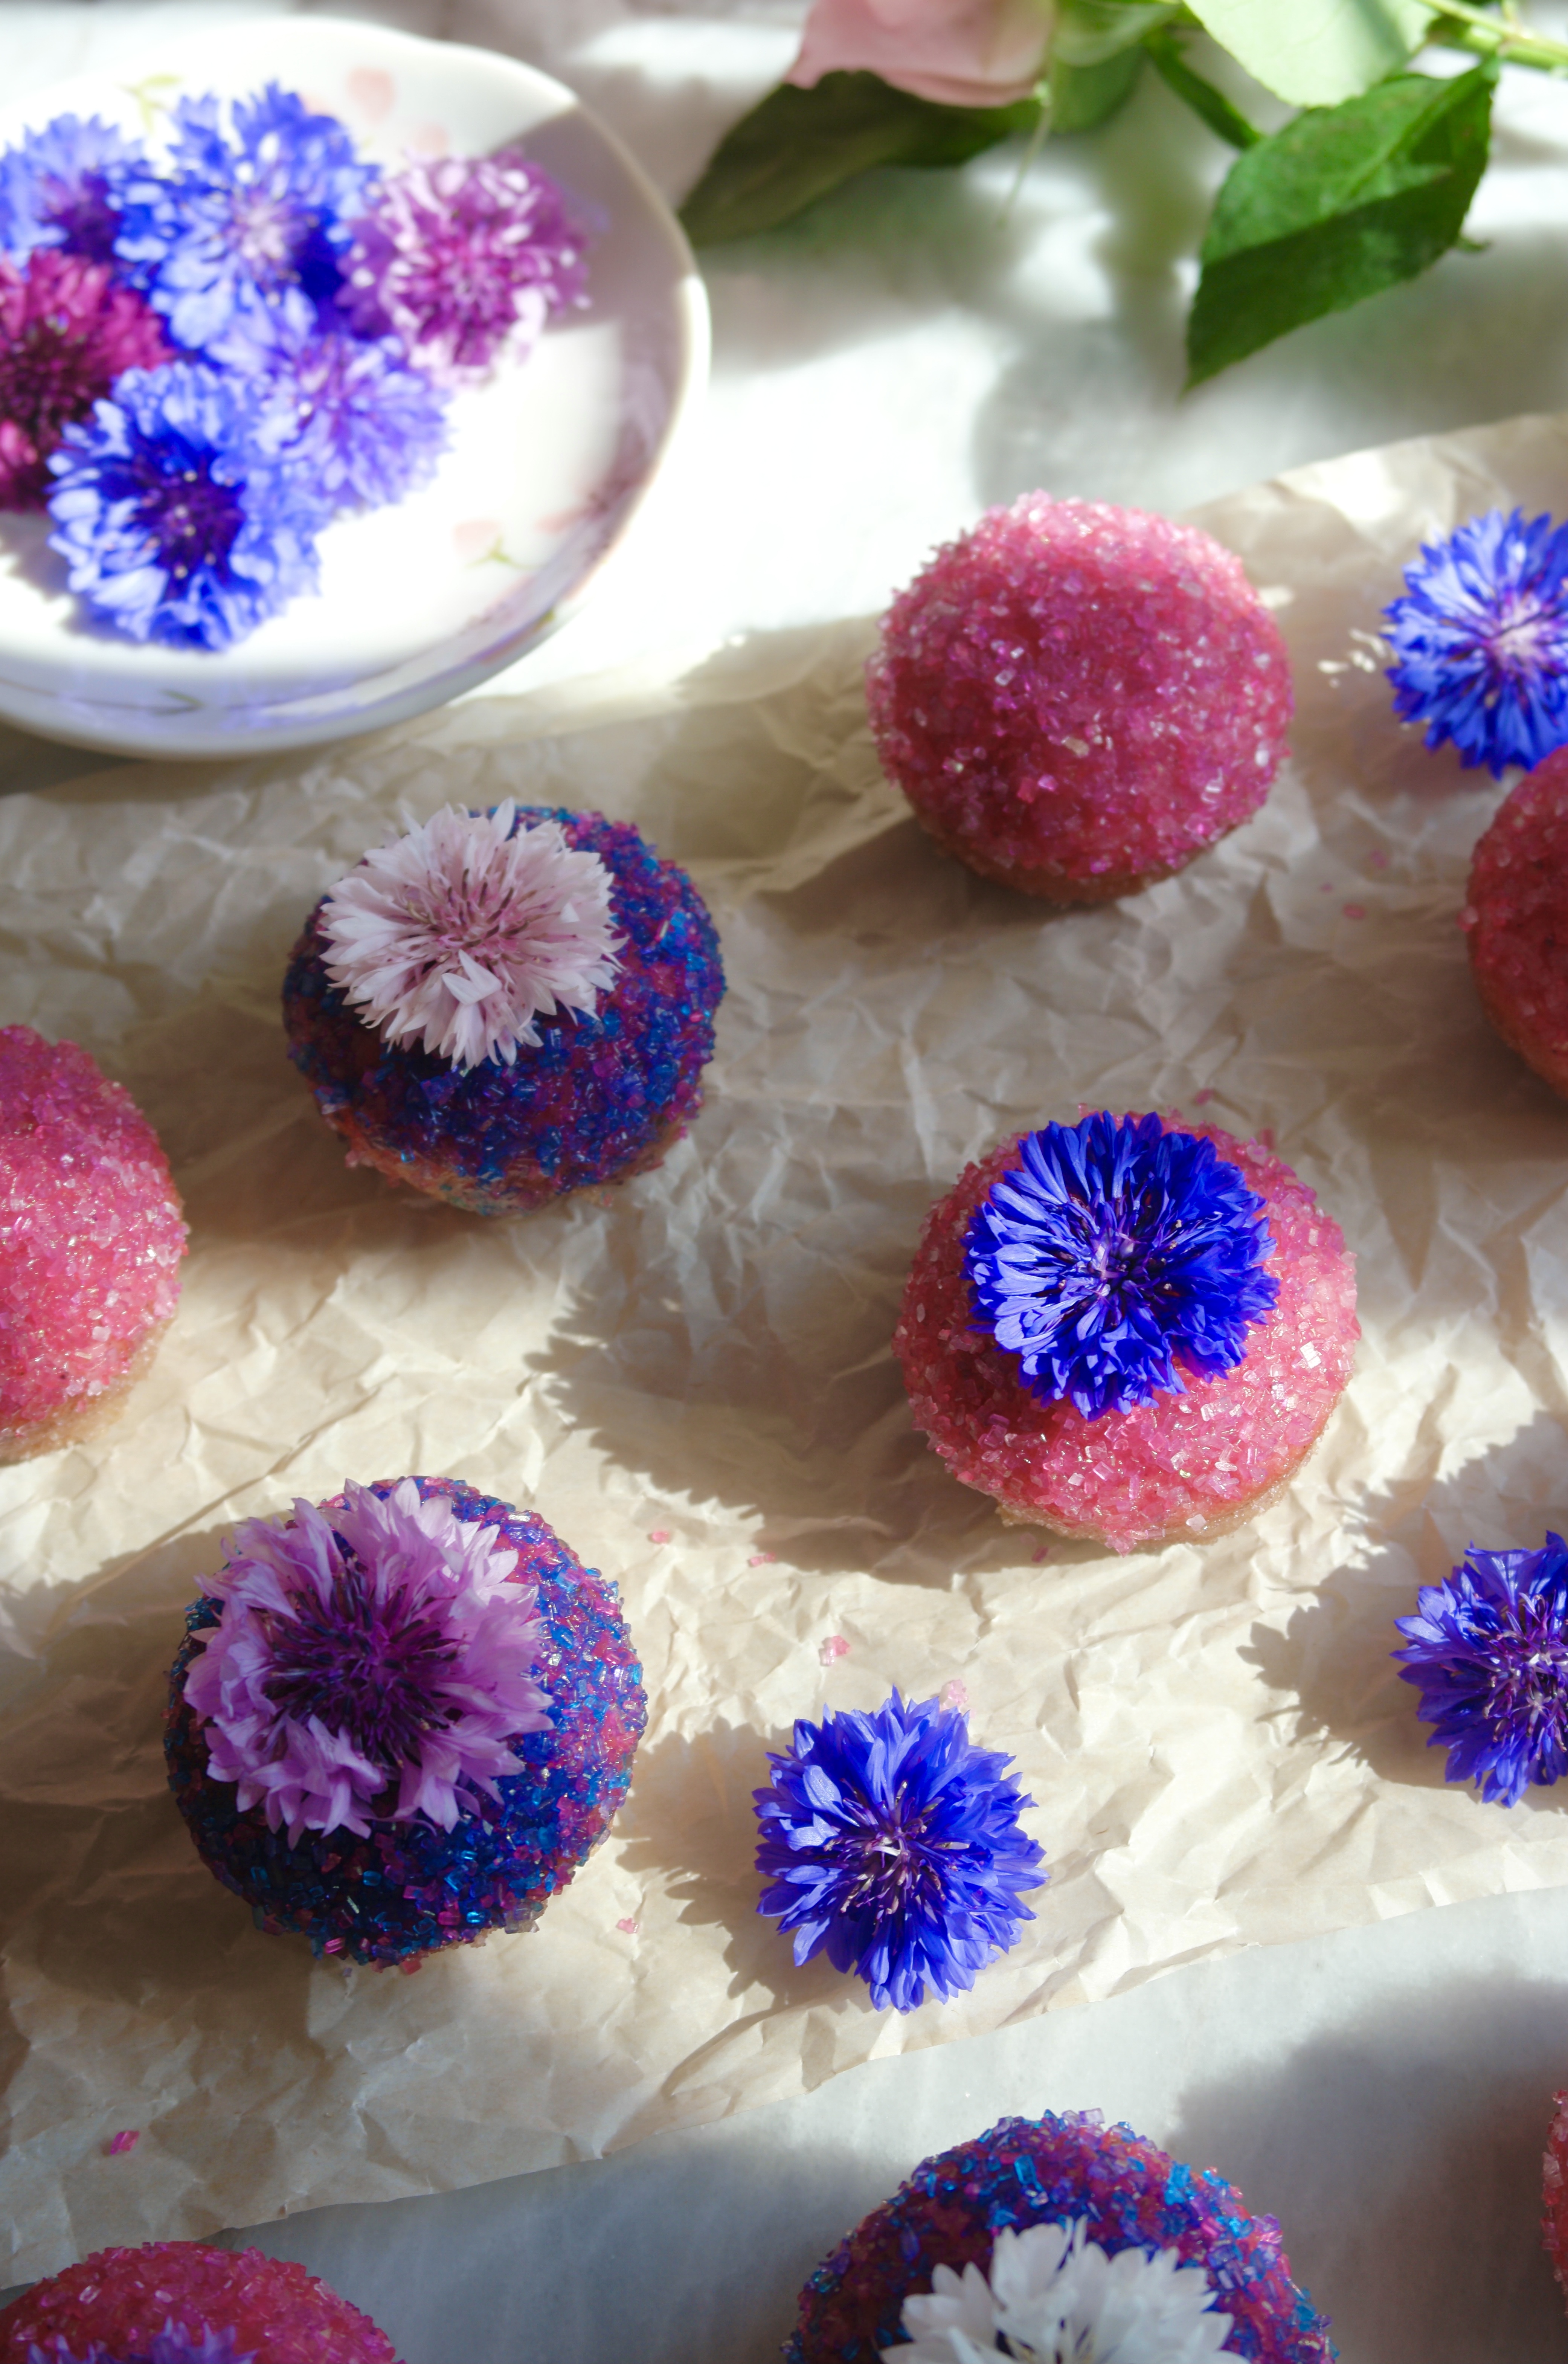 sugared mini muffins with edible flowers